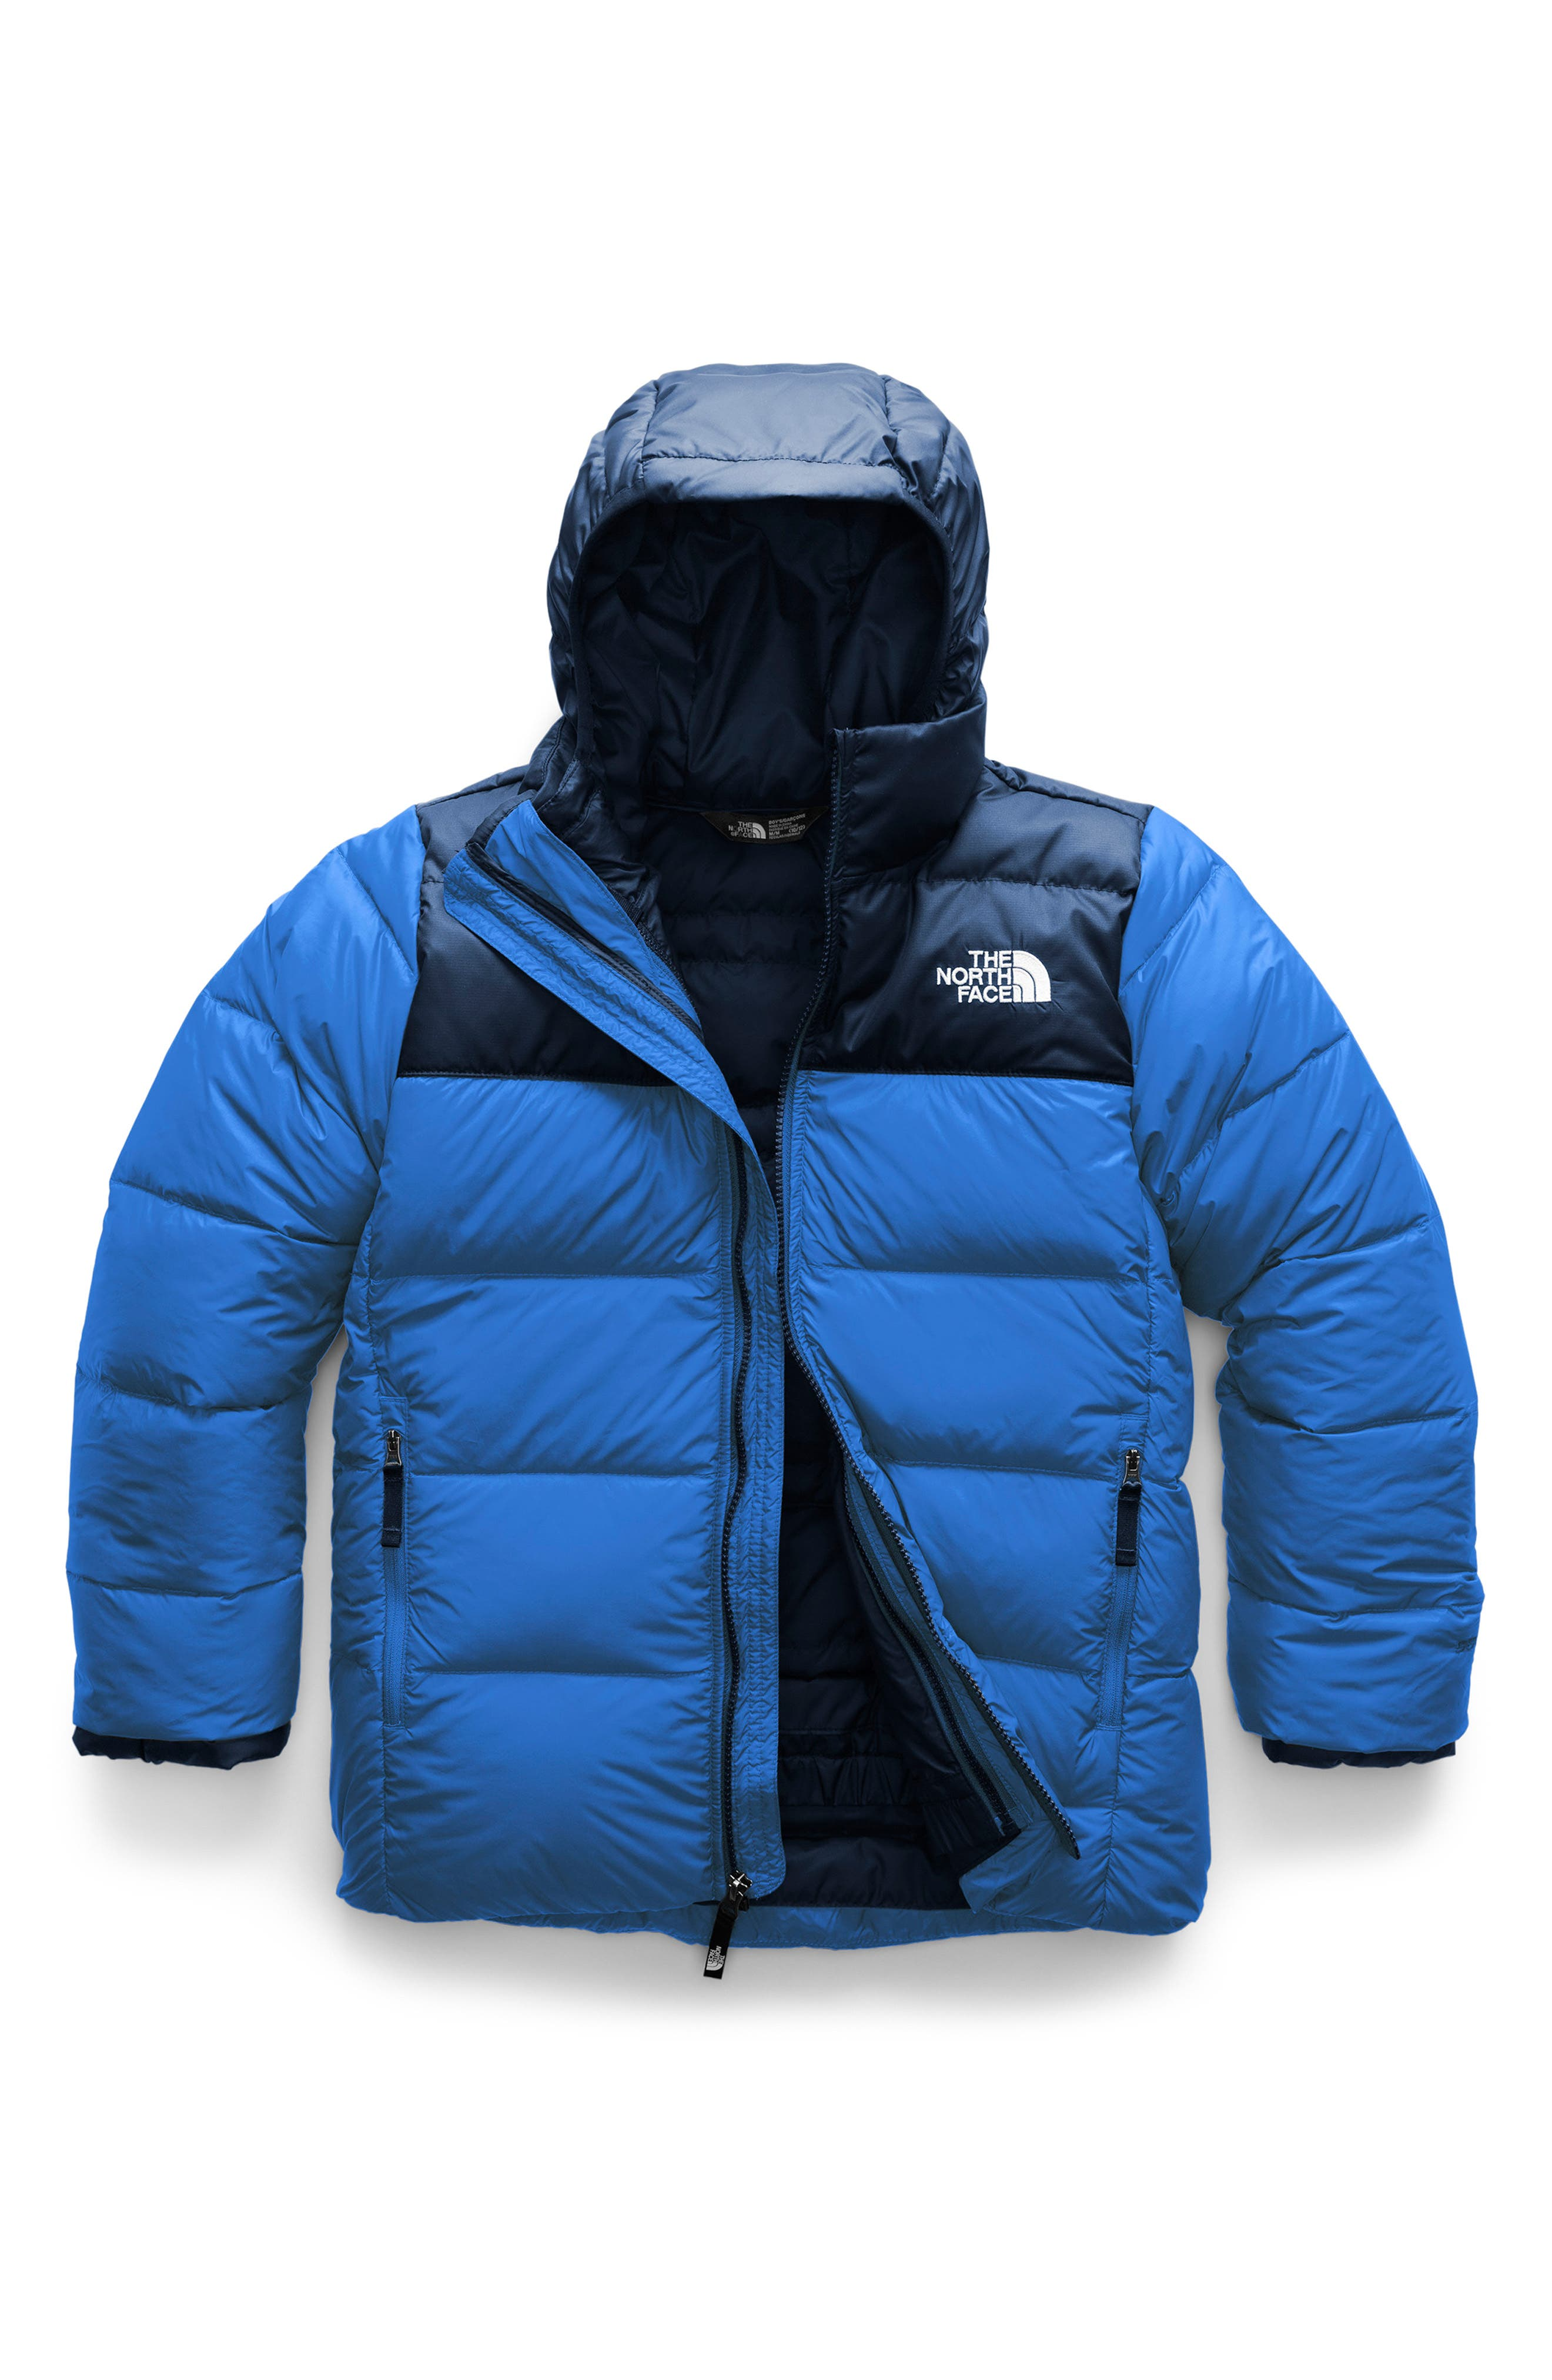 THE NORTH FACE Double Down TriClimate<sup>®</sup> 3-in-1 Jacket, Main, color, 402